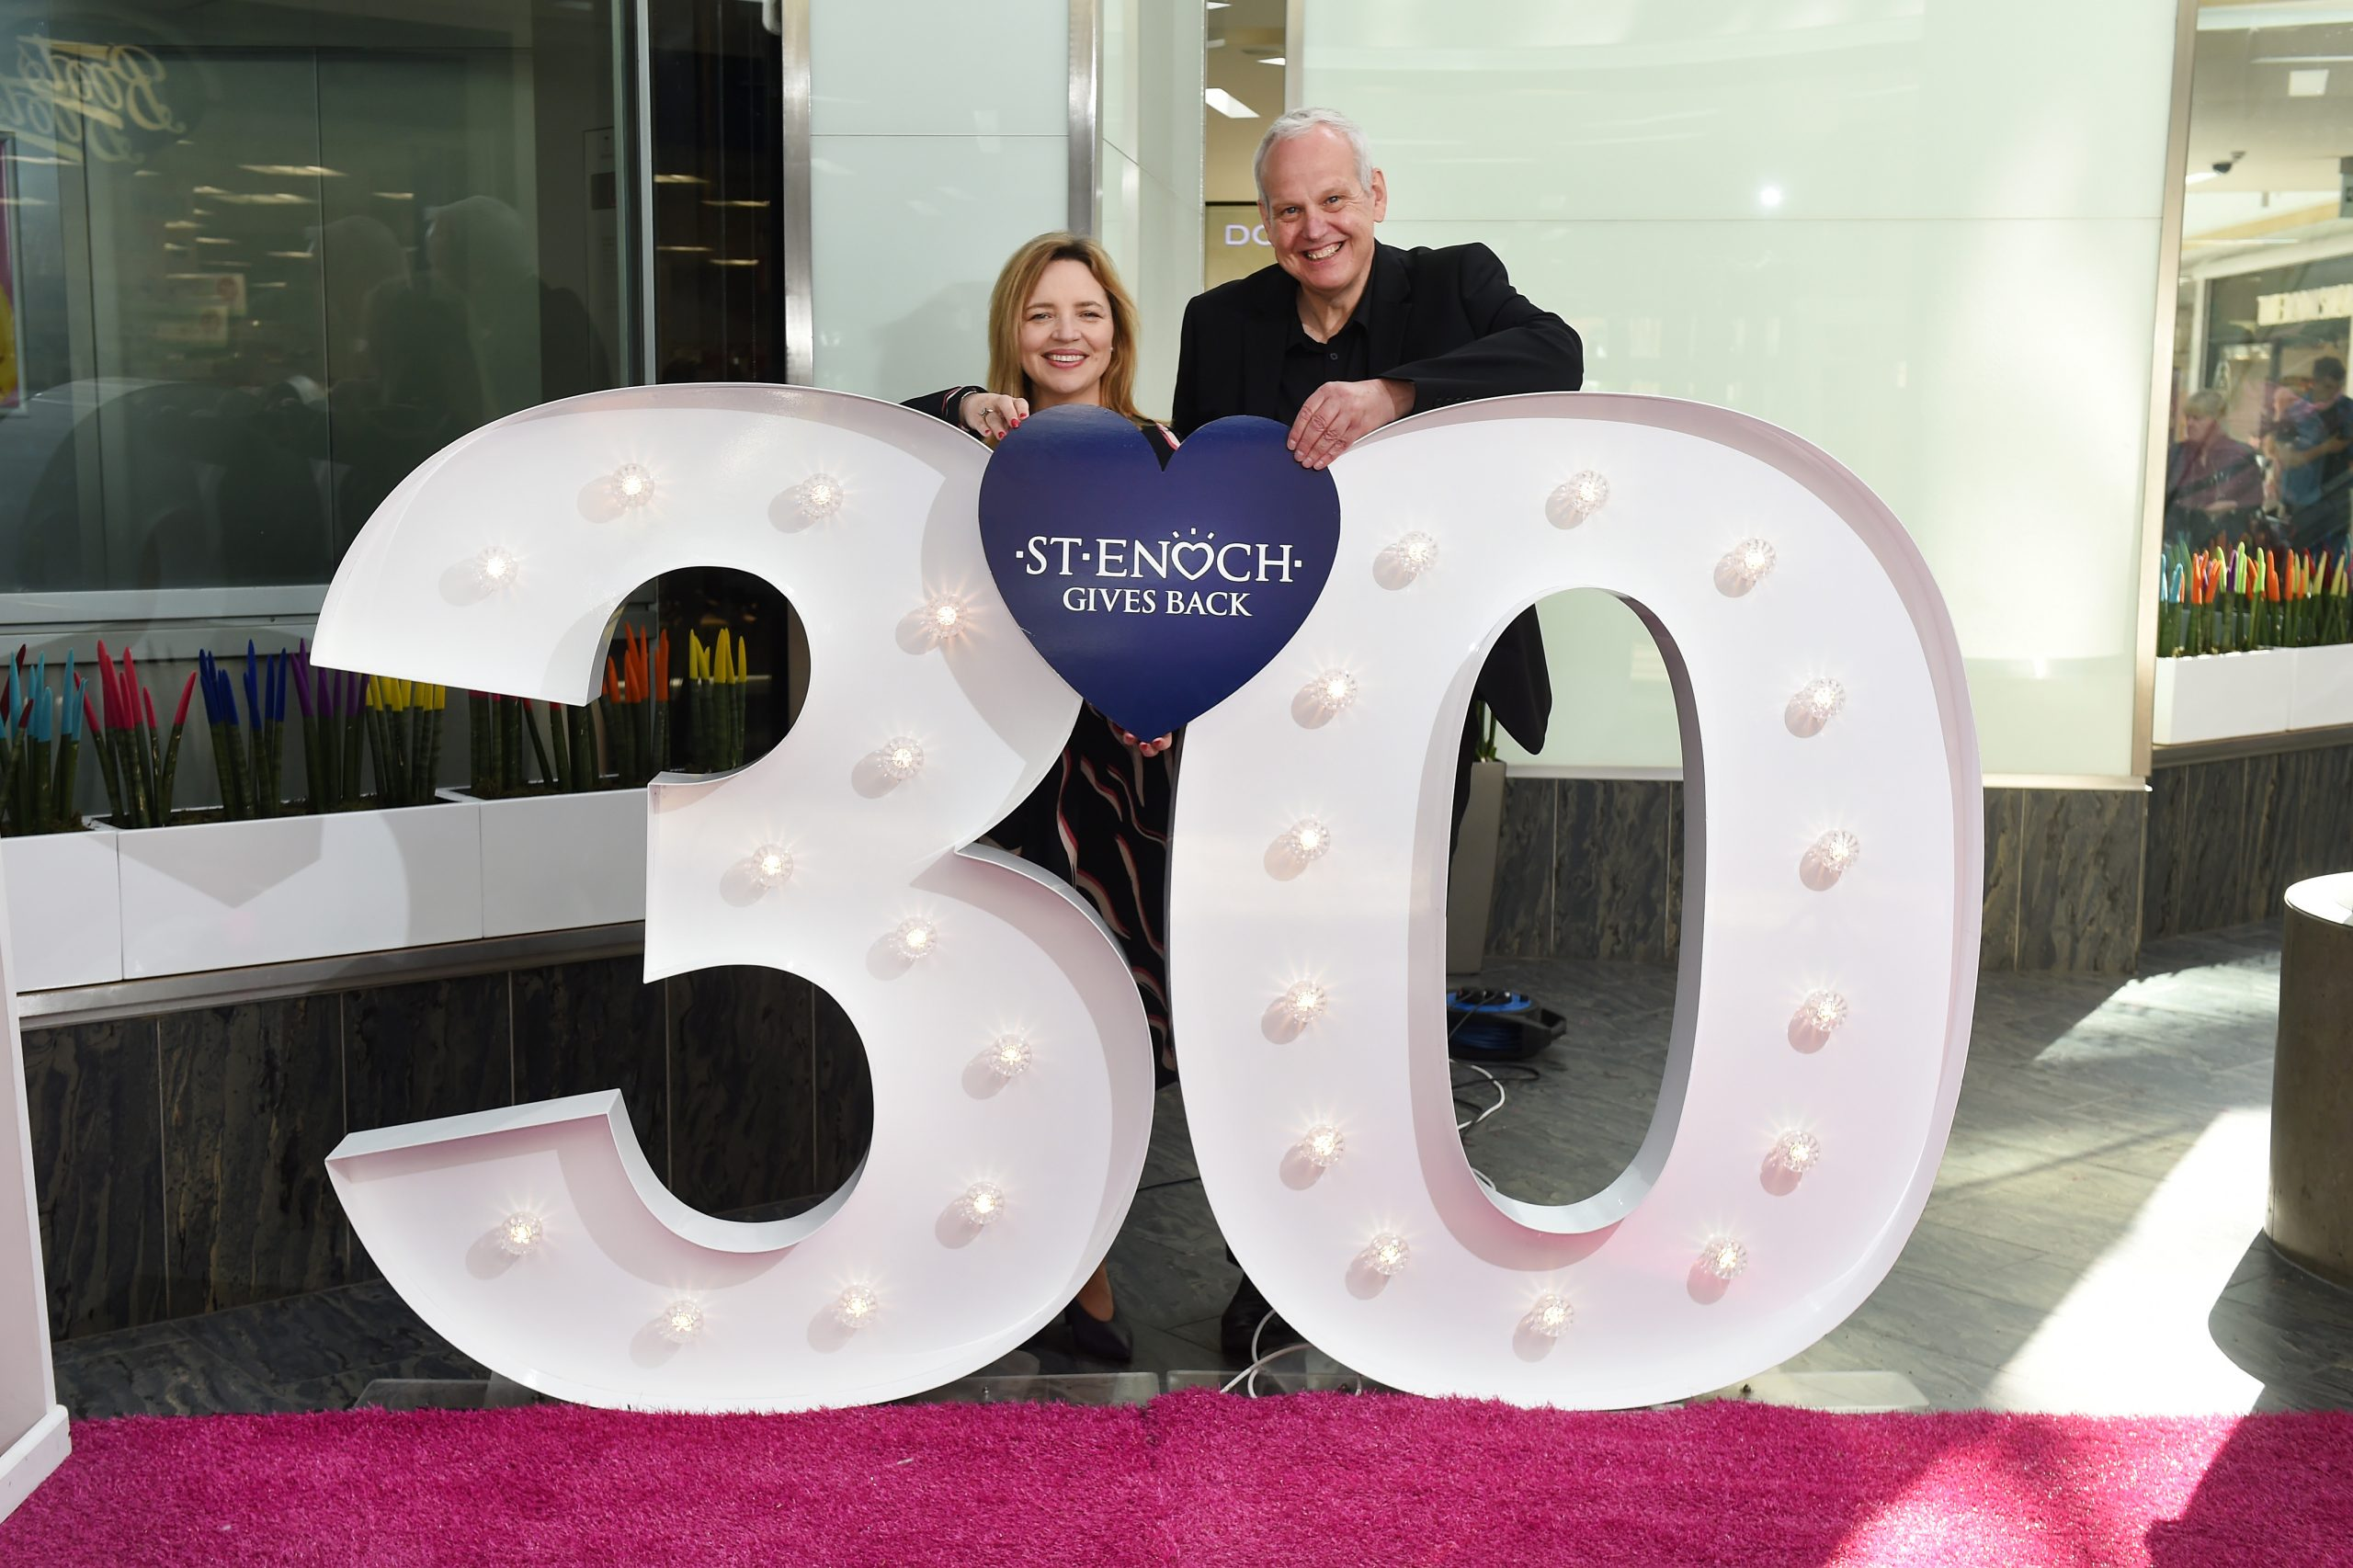 3 for 30 – St. Enoch Cares